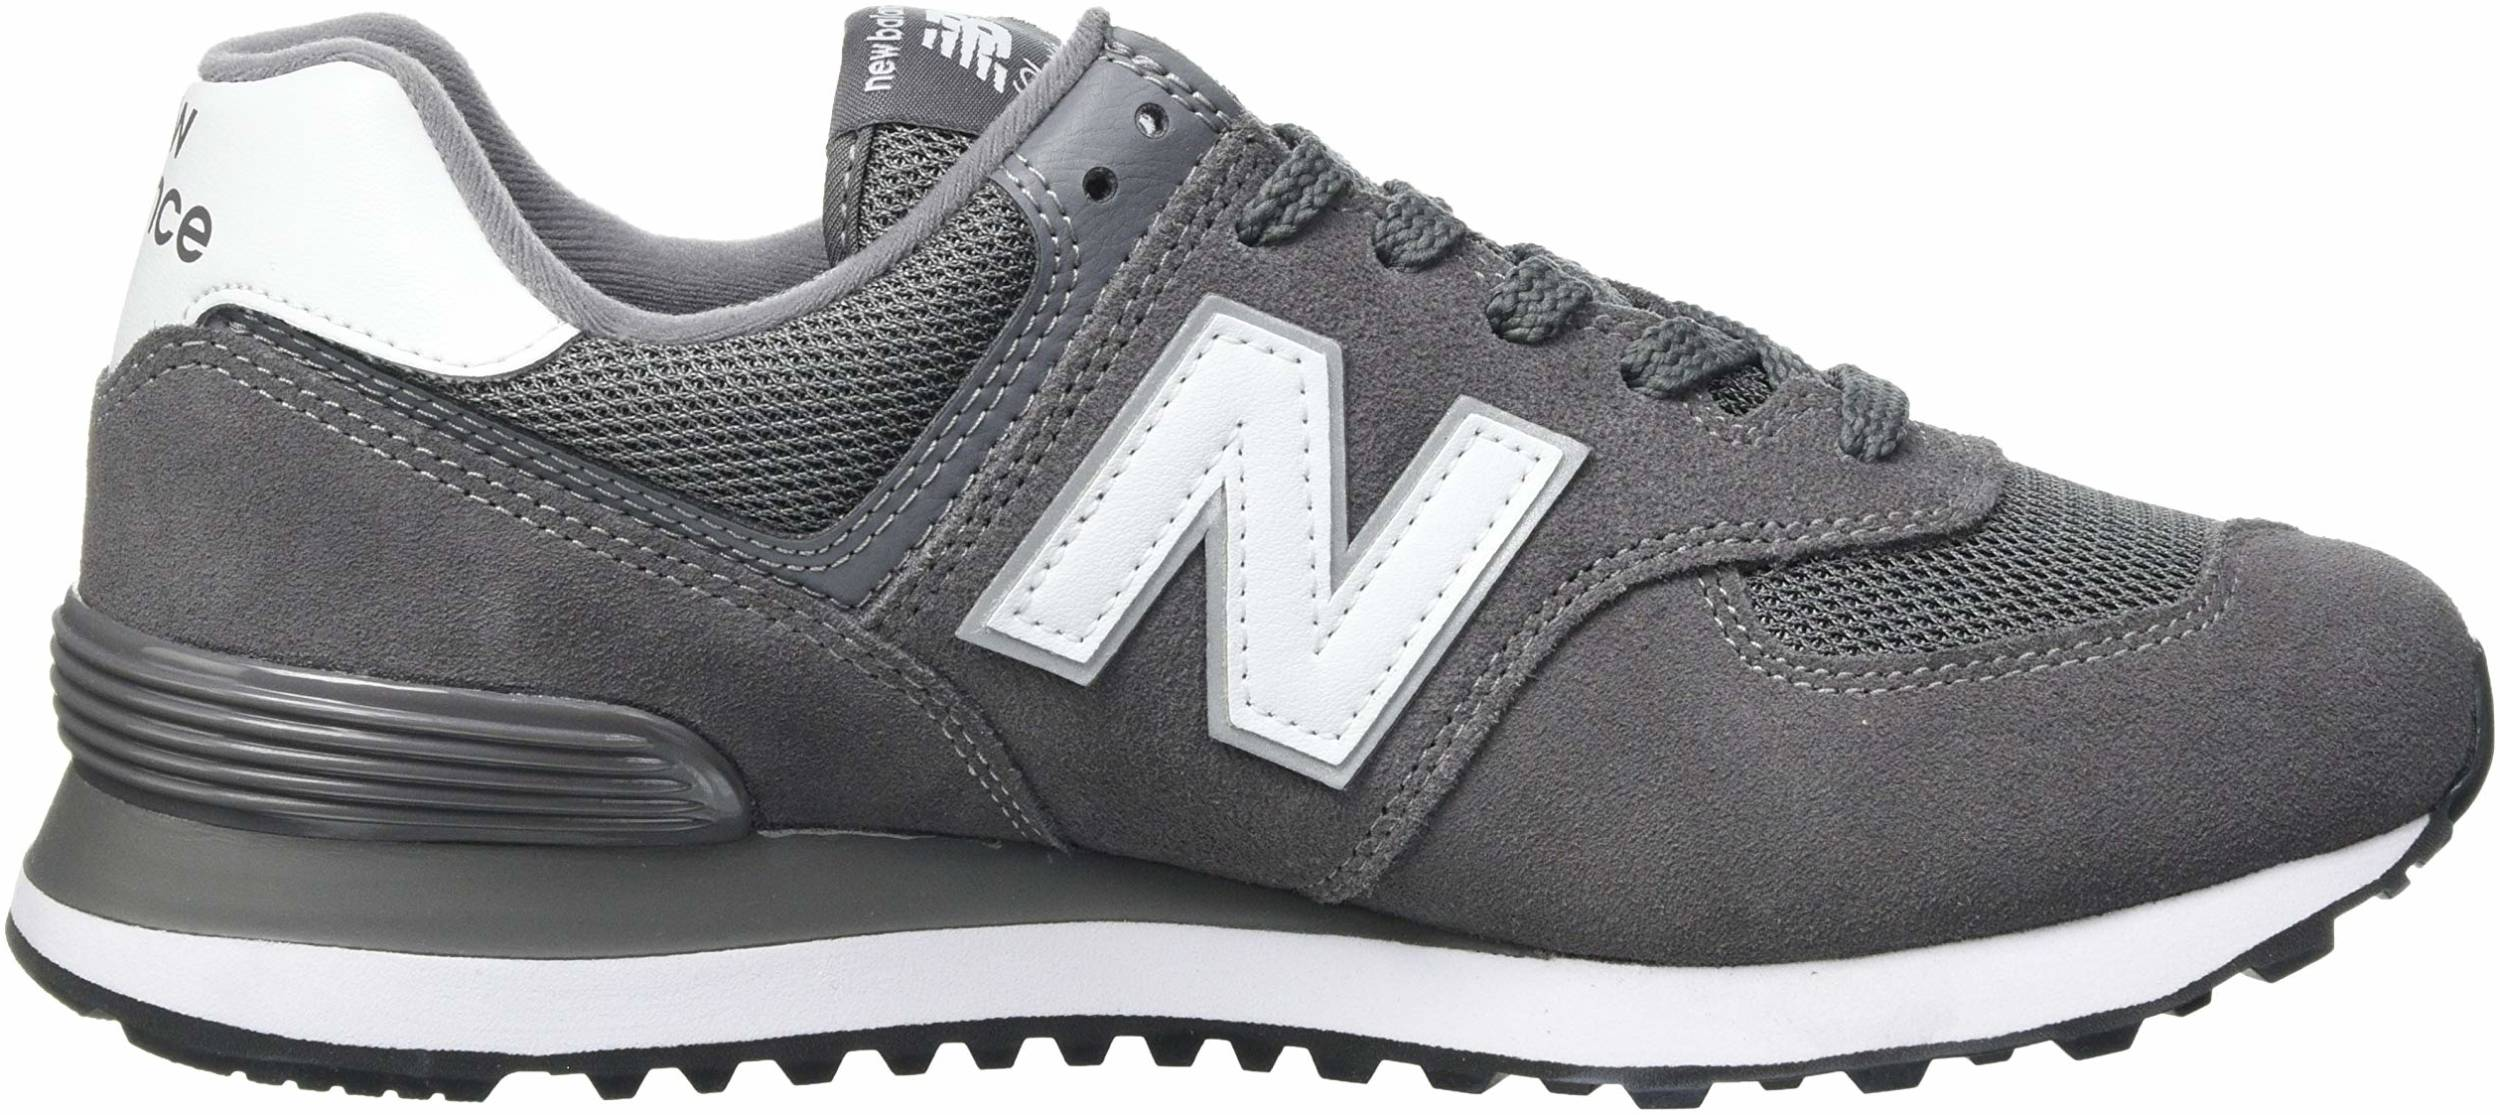 New Balance 574 Core Plus sneakers in grey (only £29)   RunRepeat